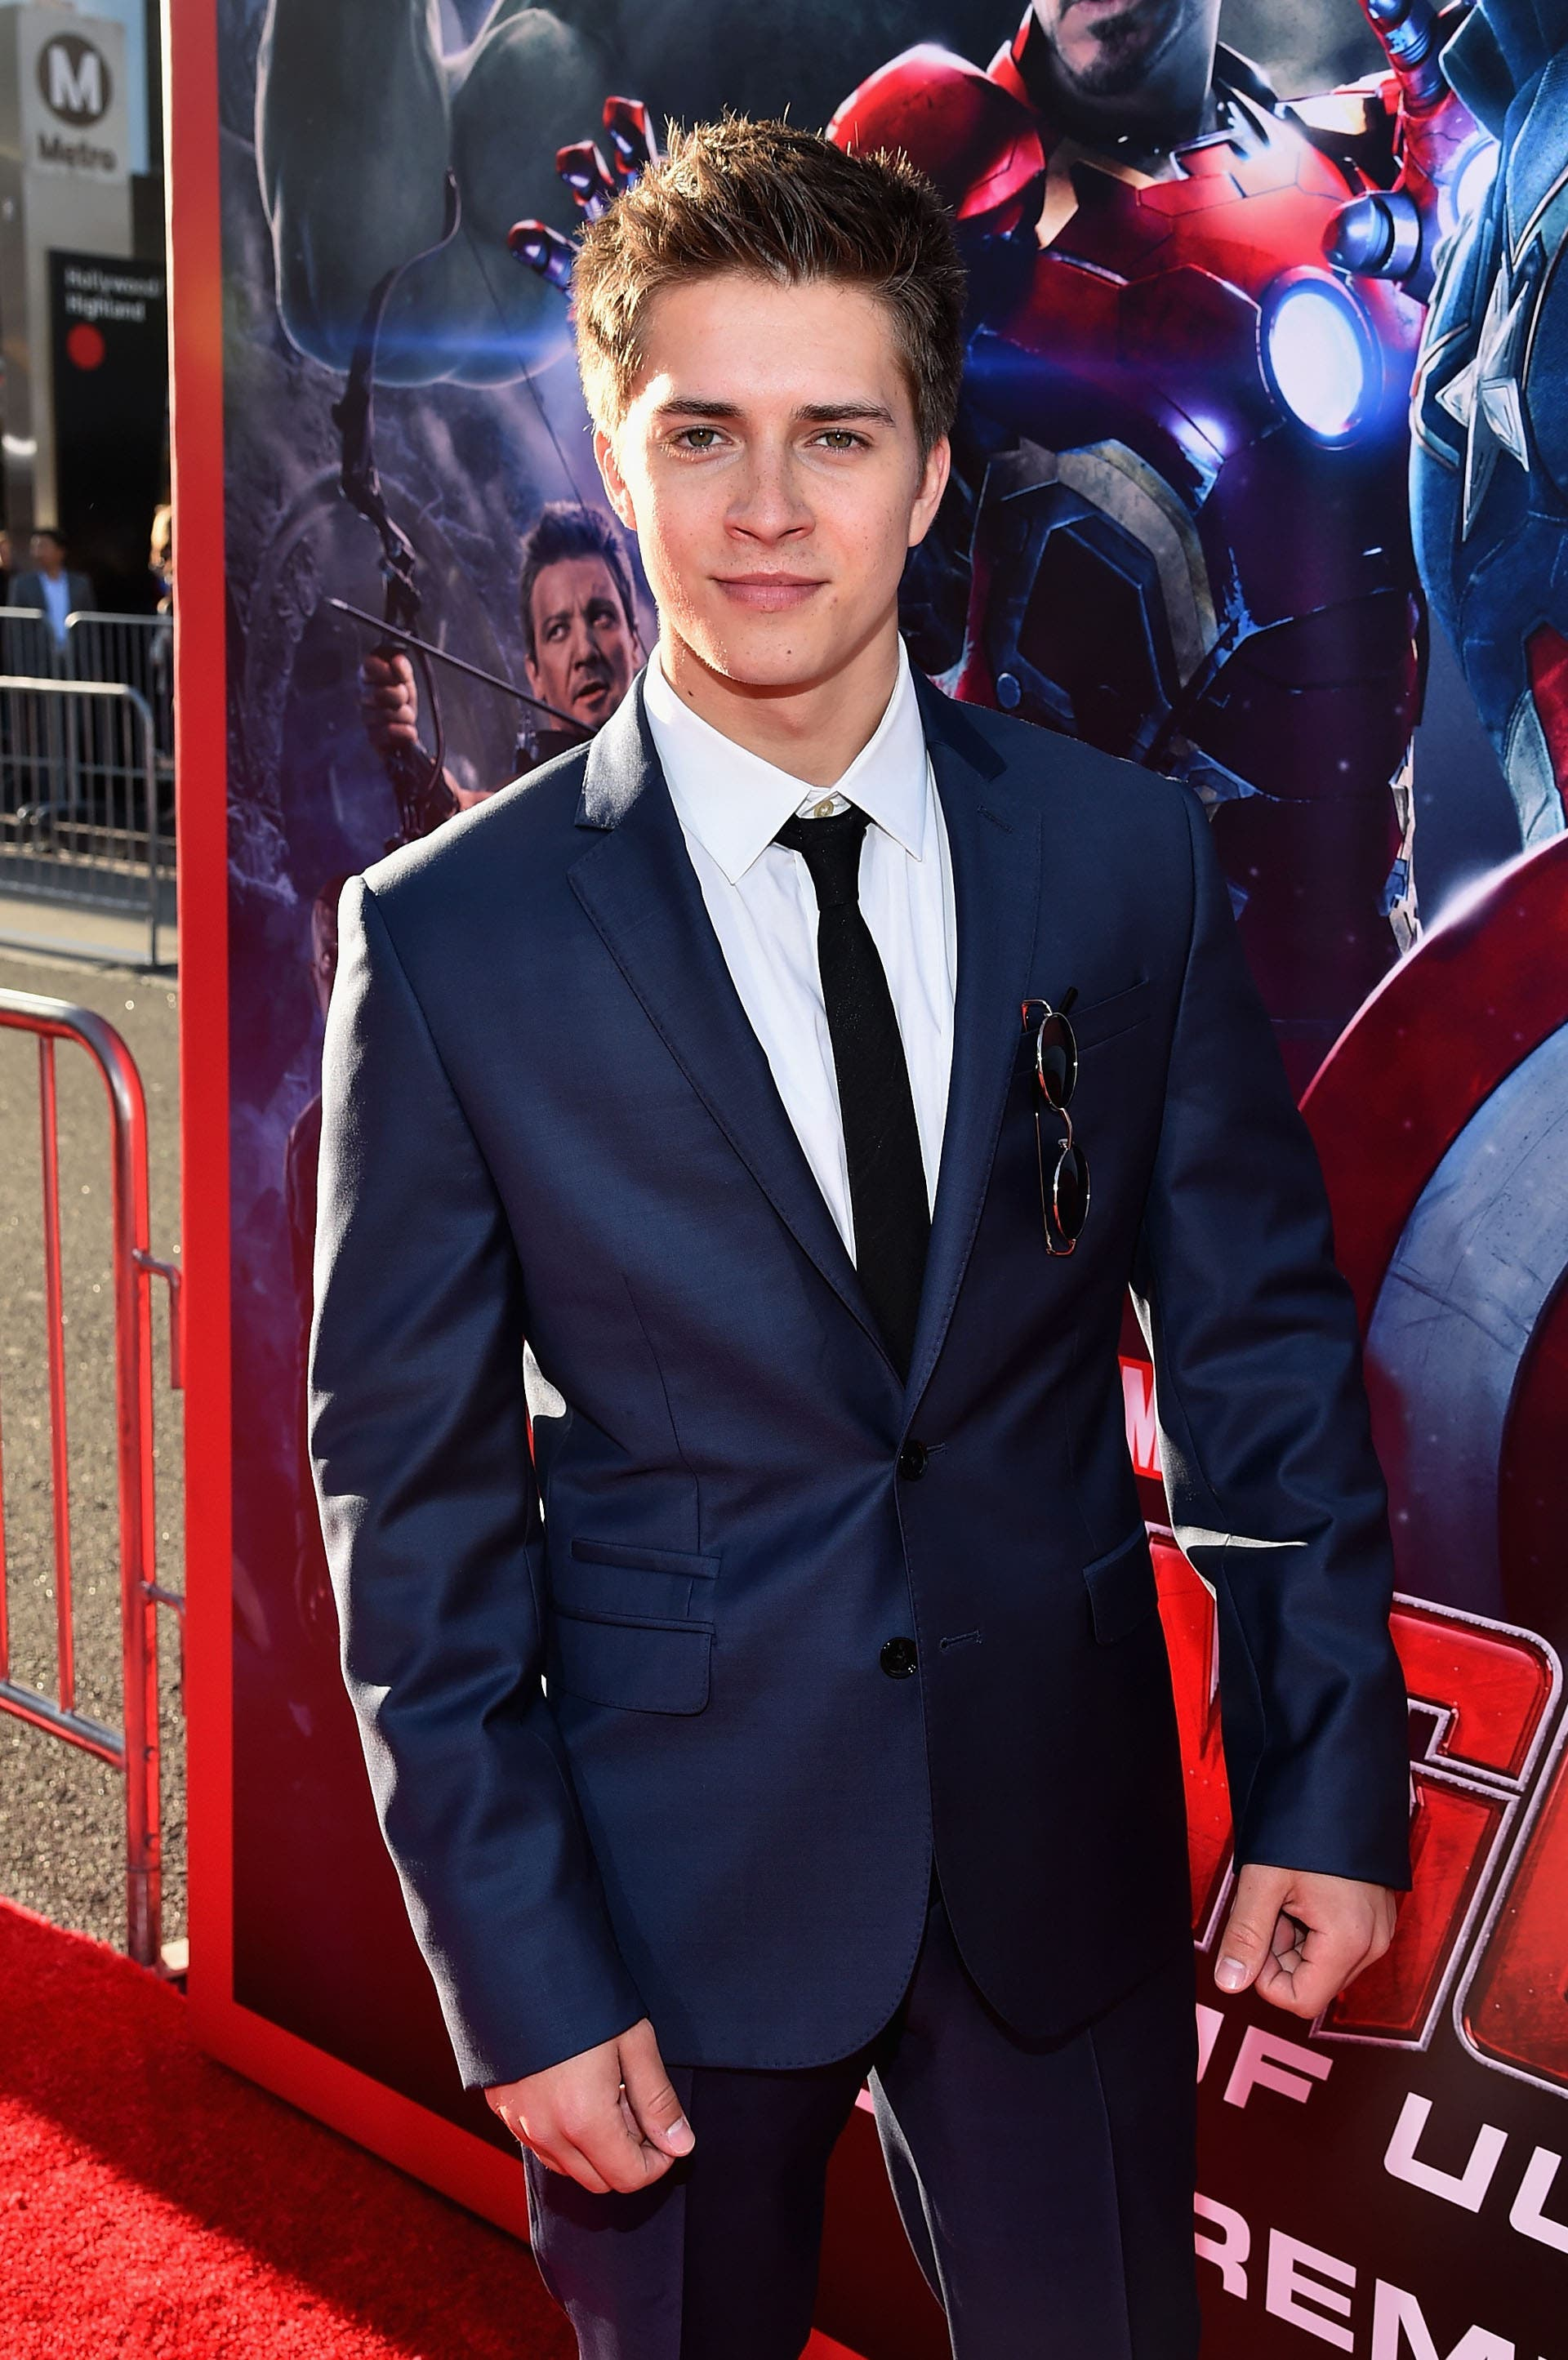 "HOLLYWOOD, CA - APRIL 13:  Actor Billy Unger attends the world premiere of Marvel's ""Avengers: Age Of Ultron"" at the Dolby Theatre on April 13, 2015 in Hollywood, California.  (Photo by Alberto E. Rodriguez/Getty Images for Disney) *** Local Caption *** Billy Unger"